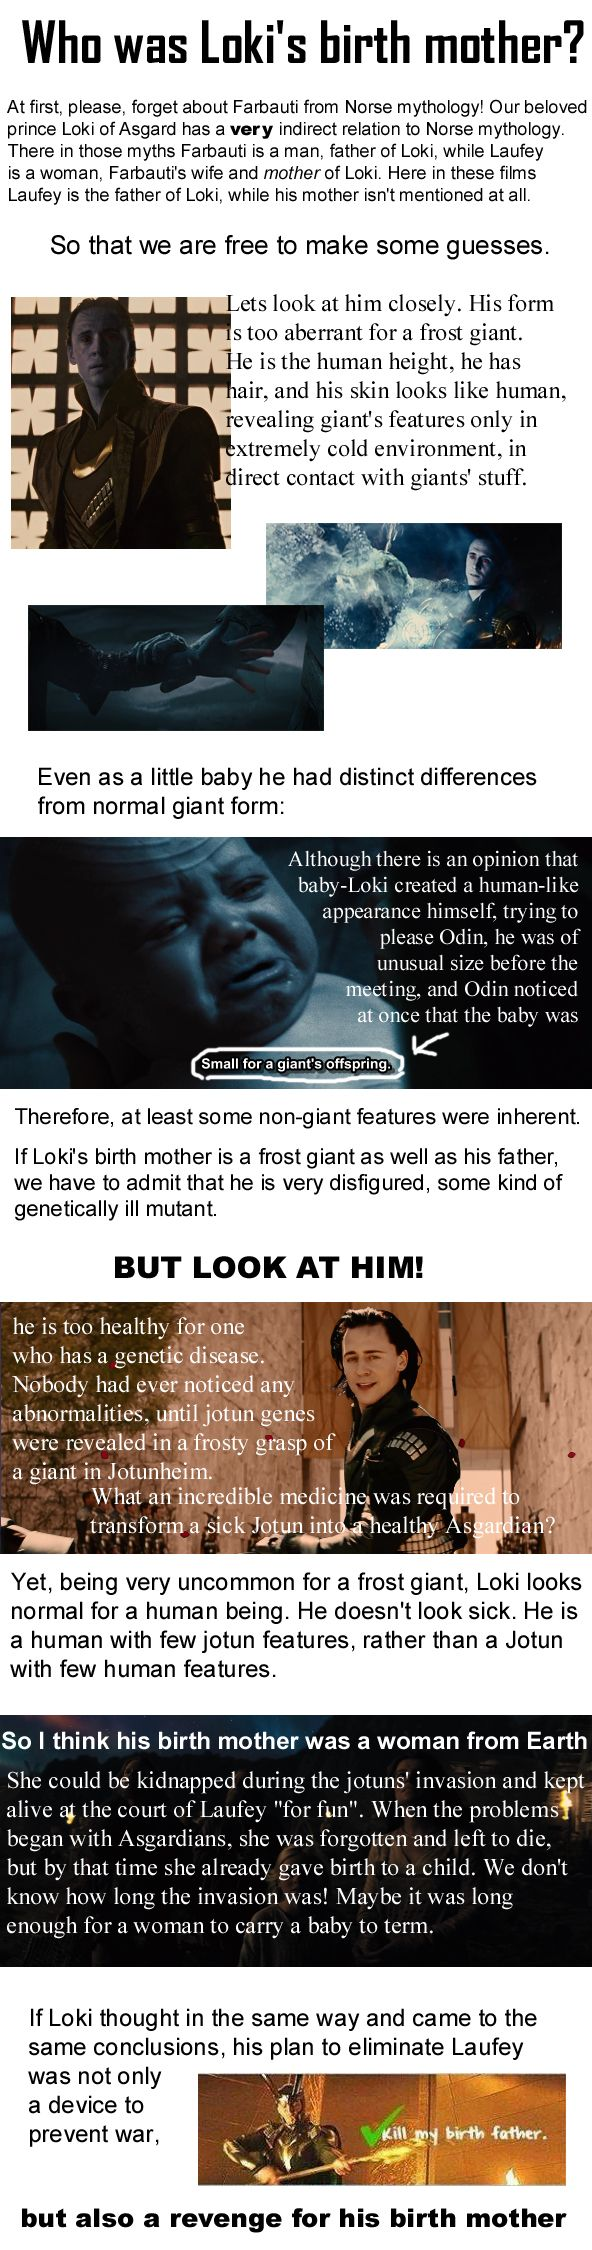 My mind is blown right now, IT MAKES SENSE.... << I like this theory, but tend to think maybe she was Asgardian, not human...<<< I agree, his birth mother was more likely an Asgardian.